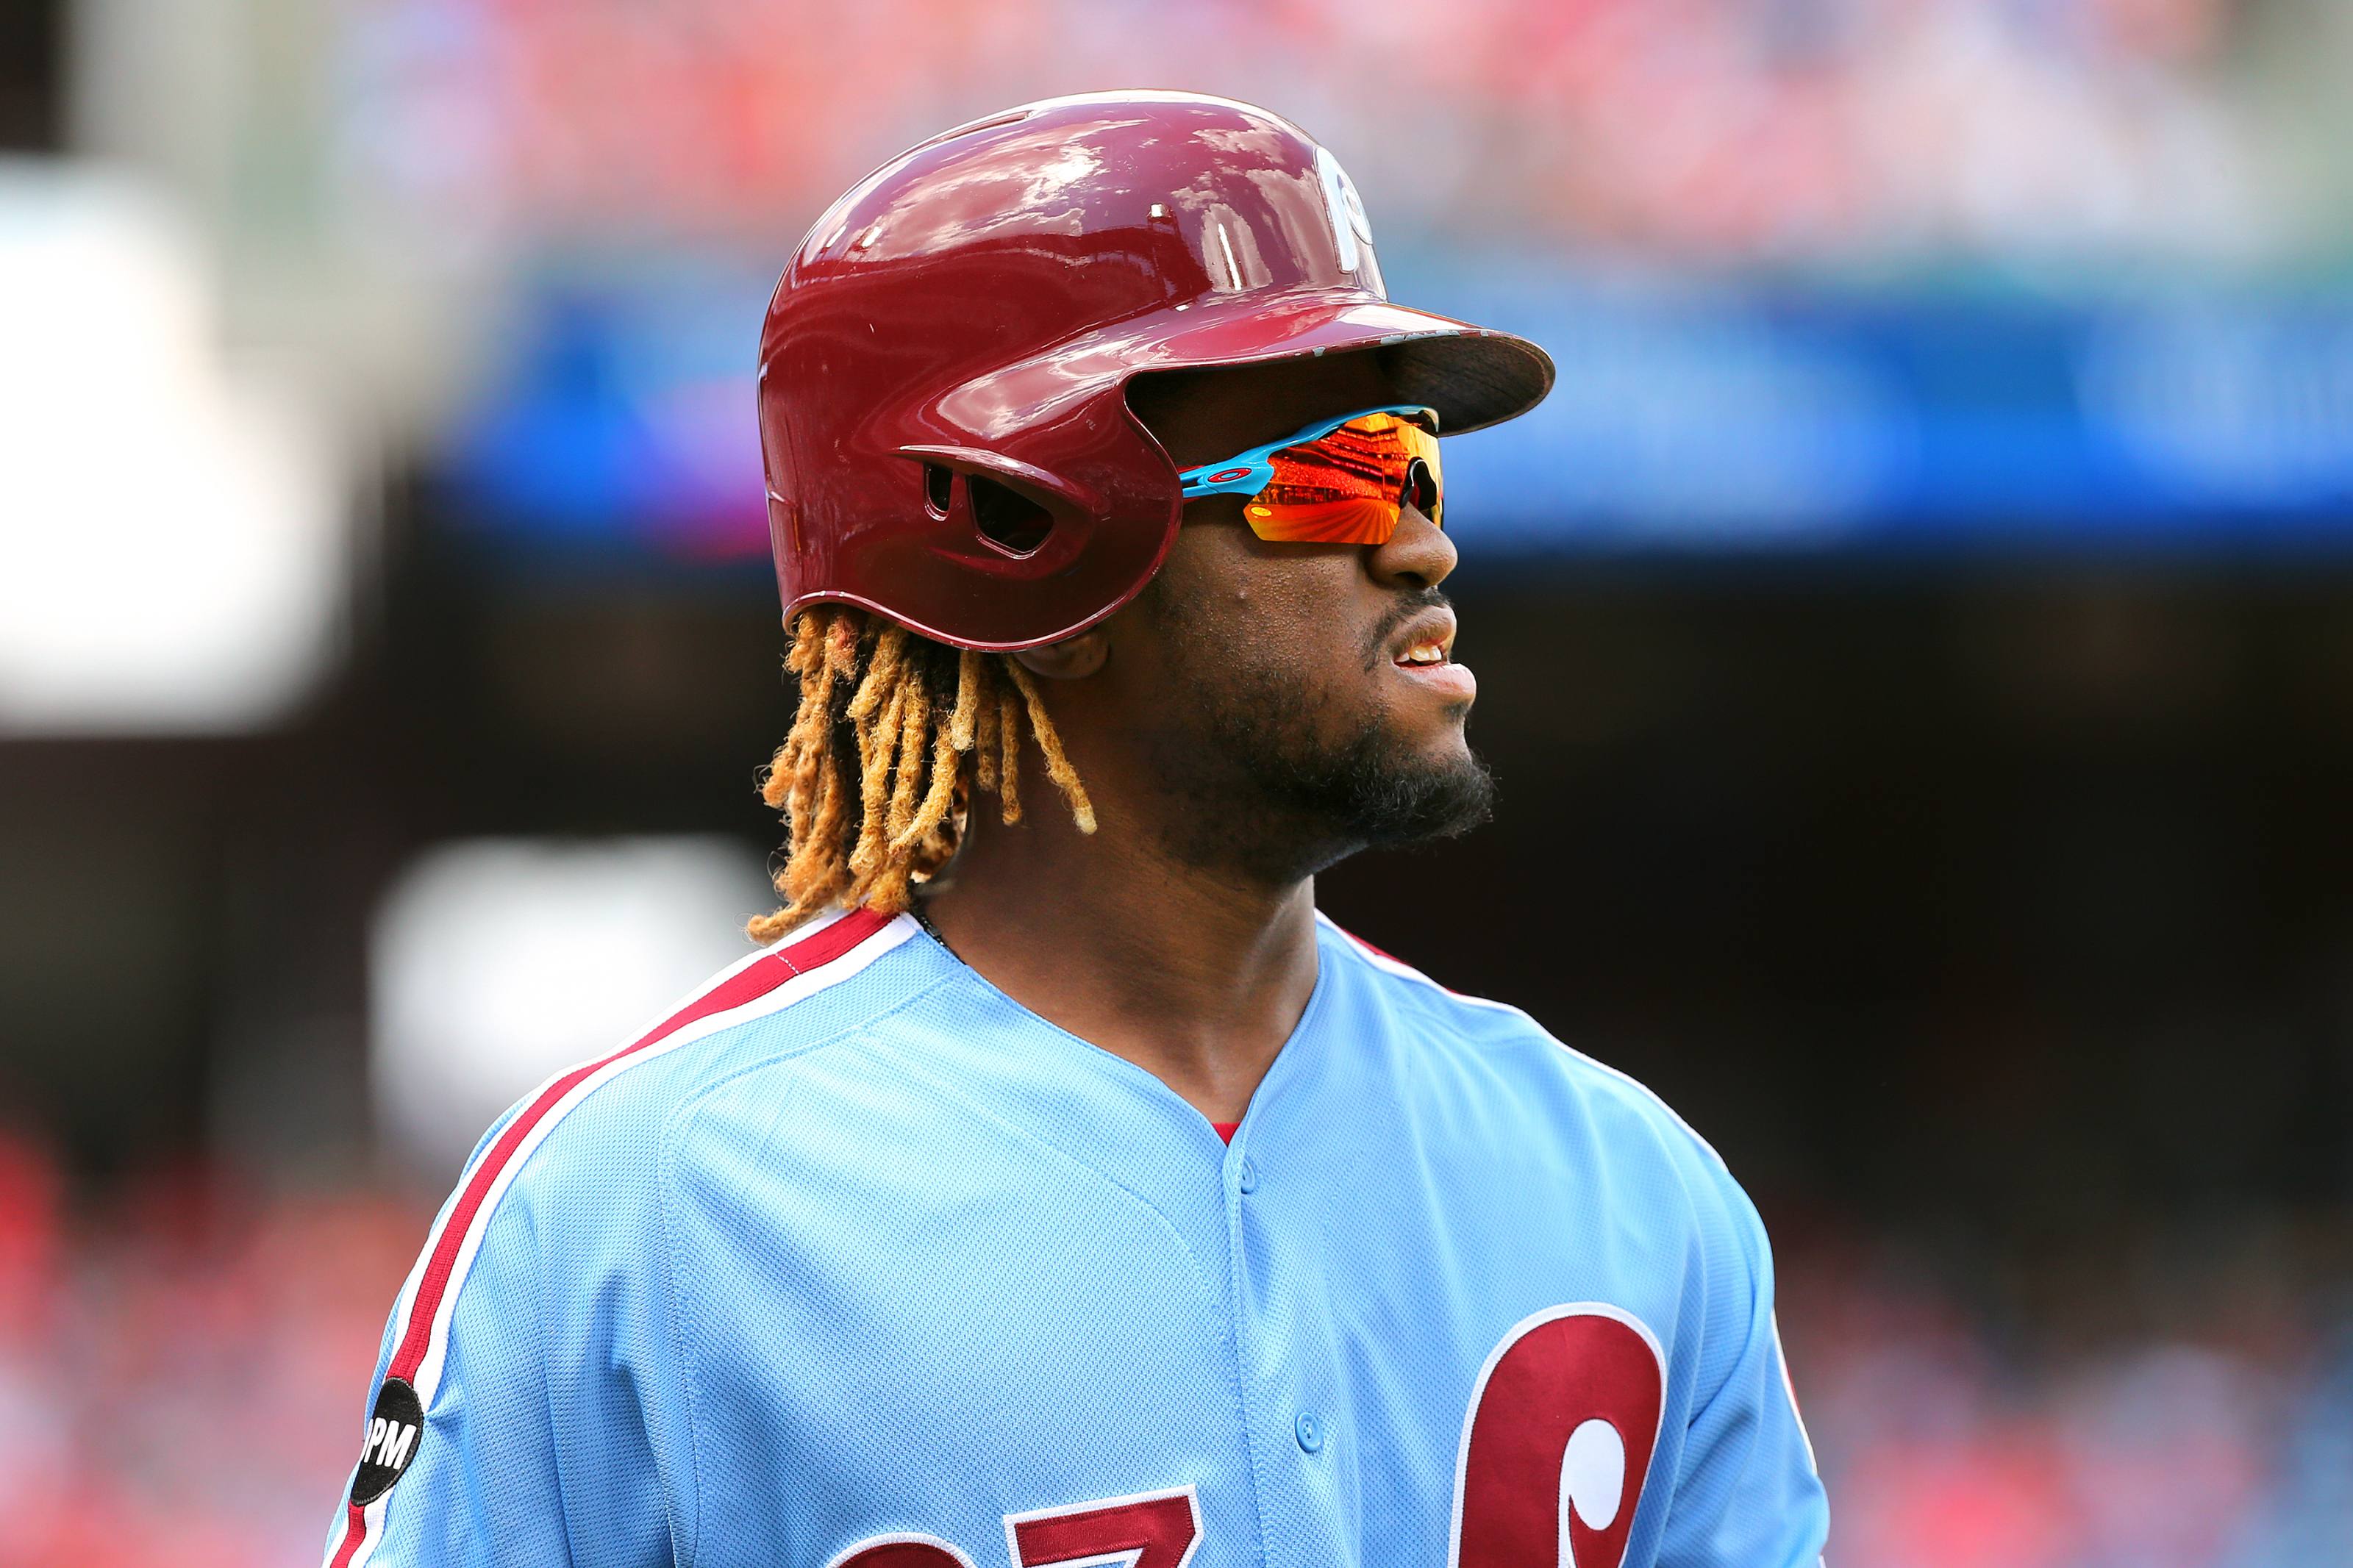 Phillies Odubel Herrera Hopes For Second Chance In Majors